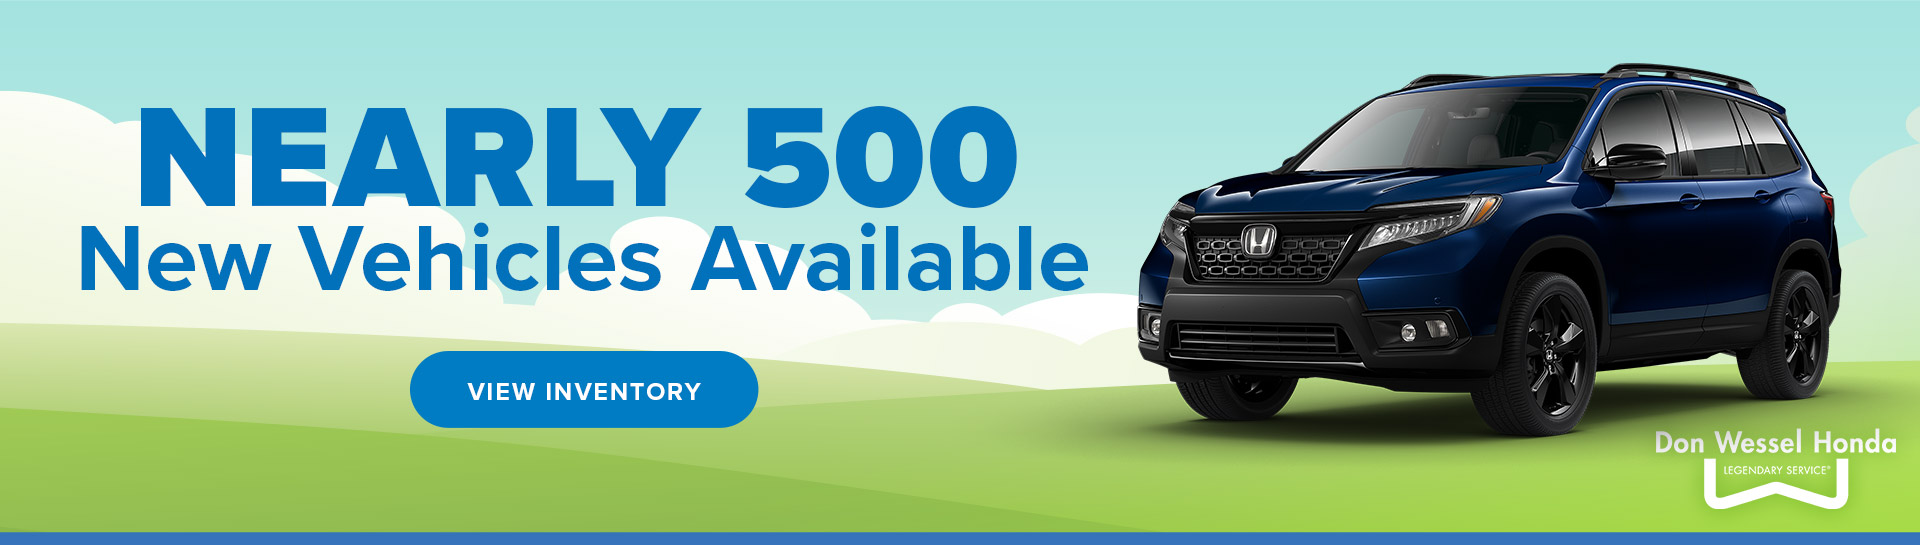 Nearly 500 New Vehicles Available at Don Wessel Honda